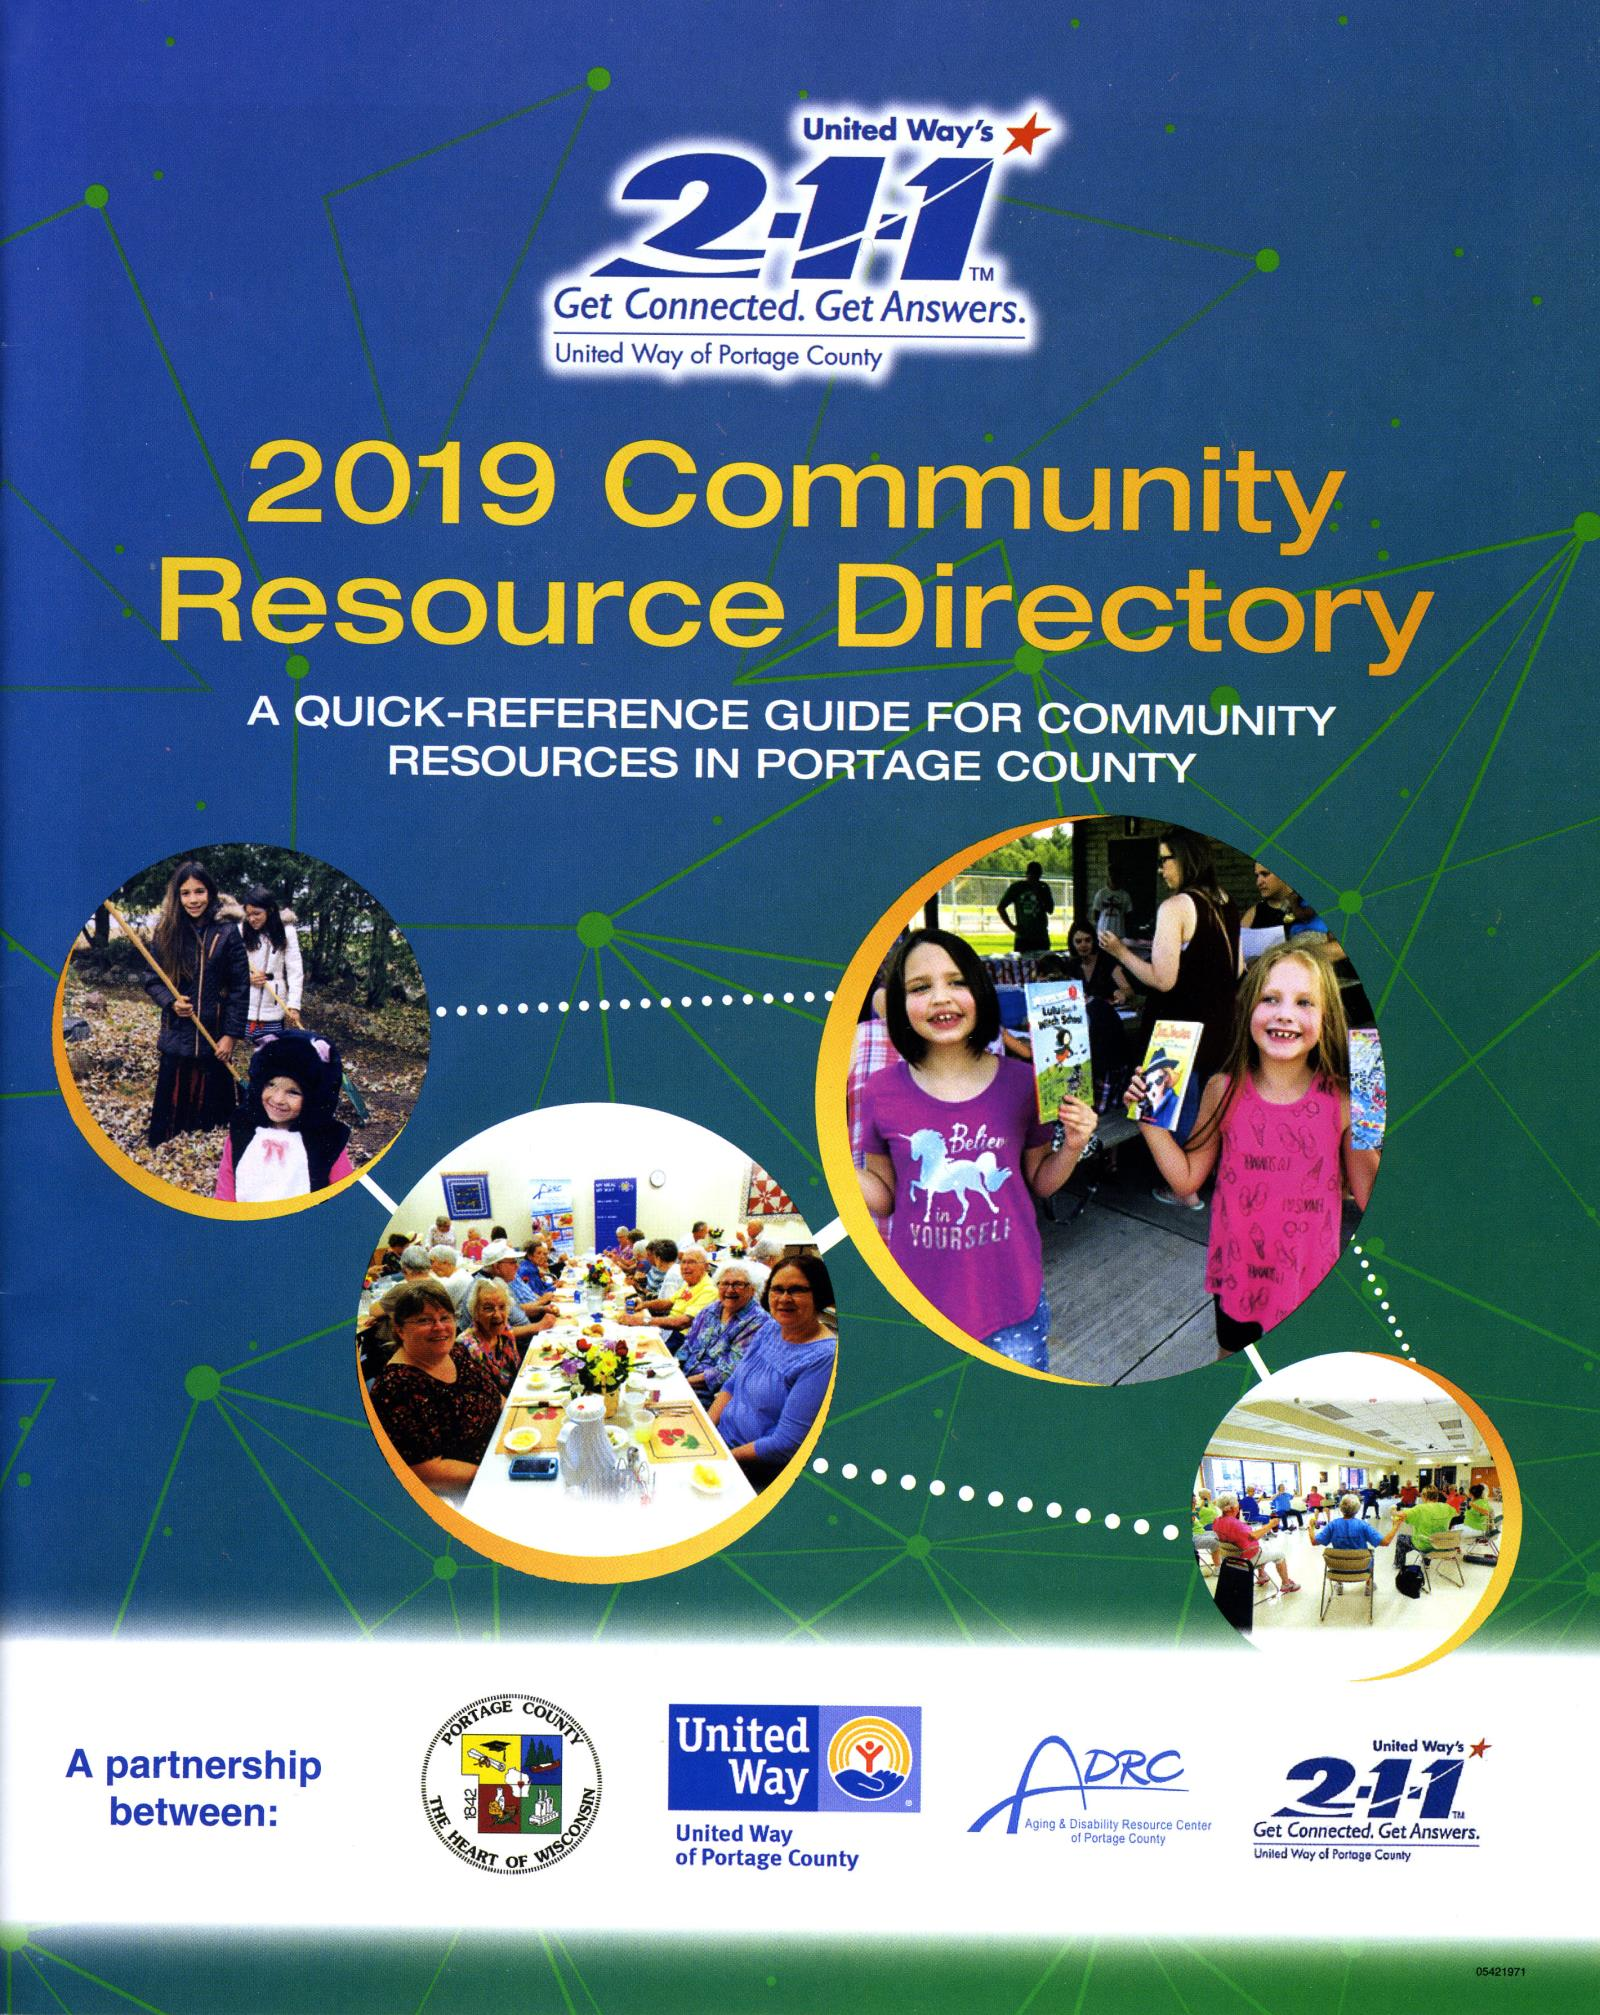 2019 Community Resource Directory